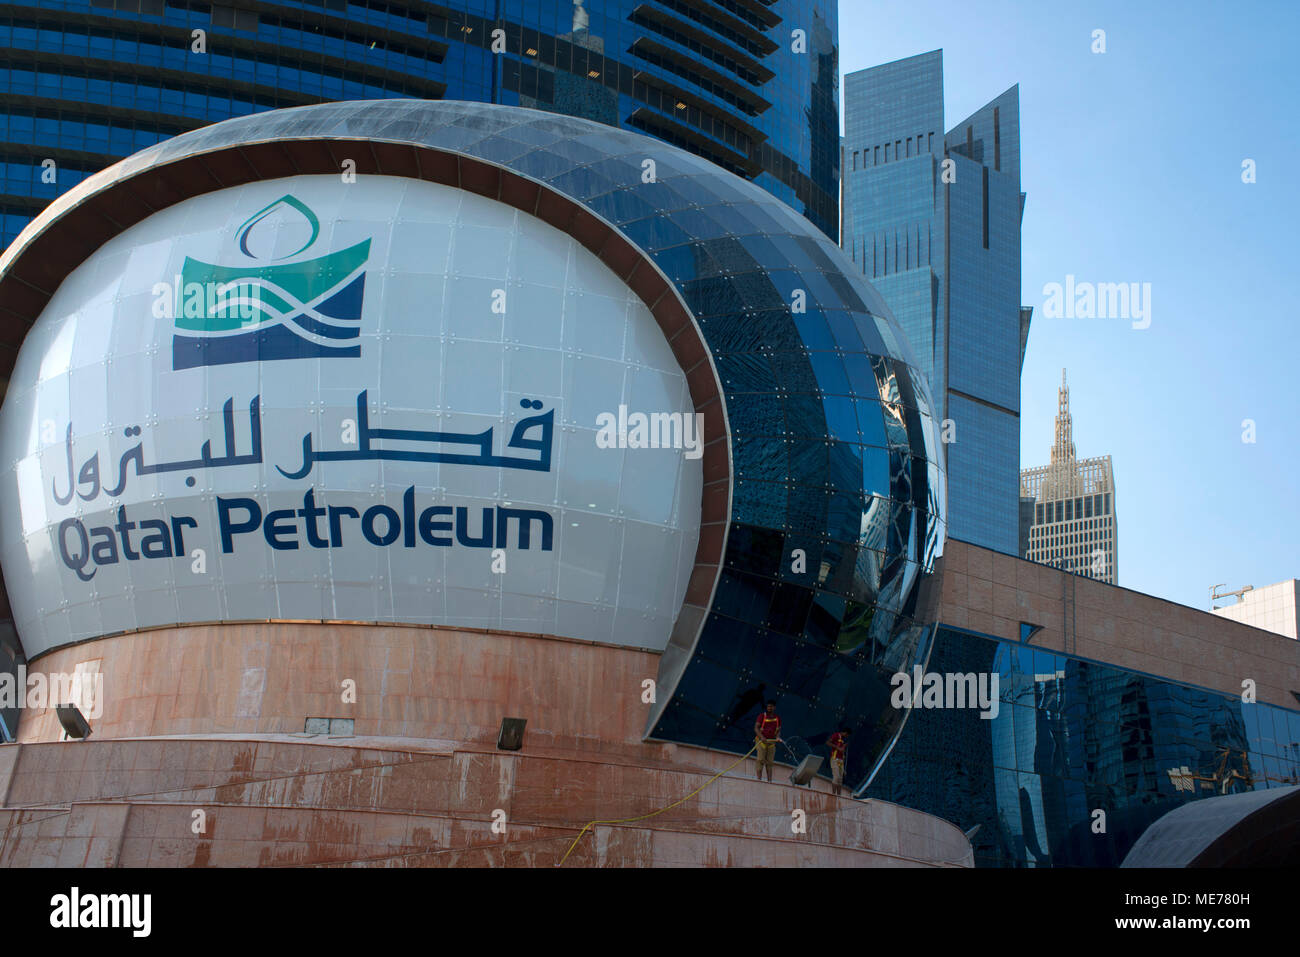 Qatar petroleum Building in the financial area of Doha, the